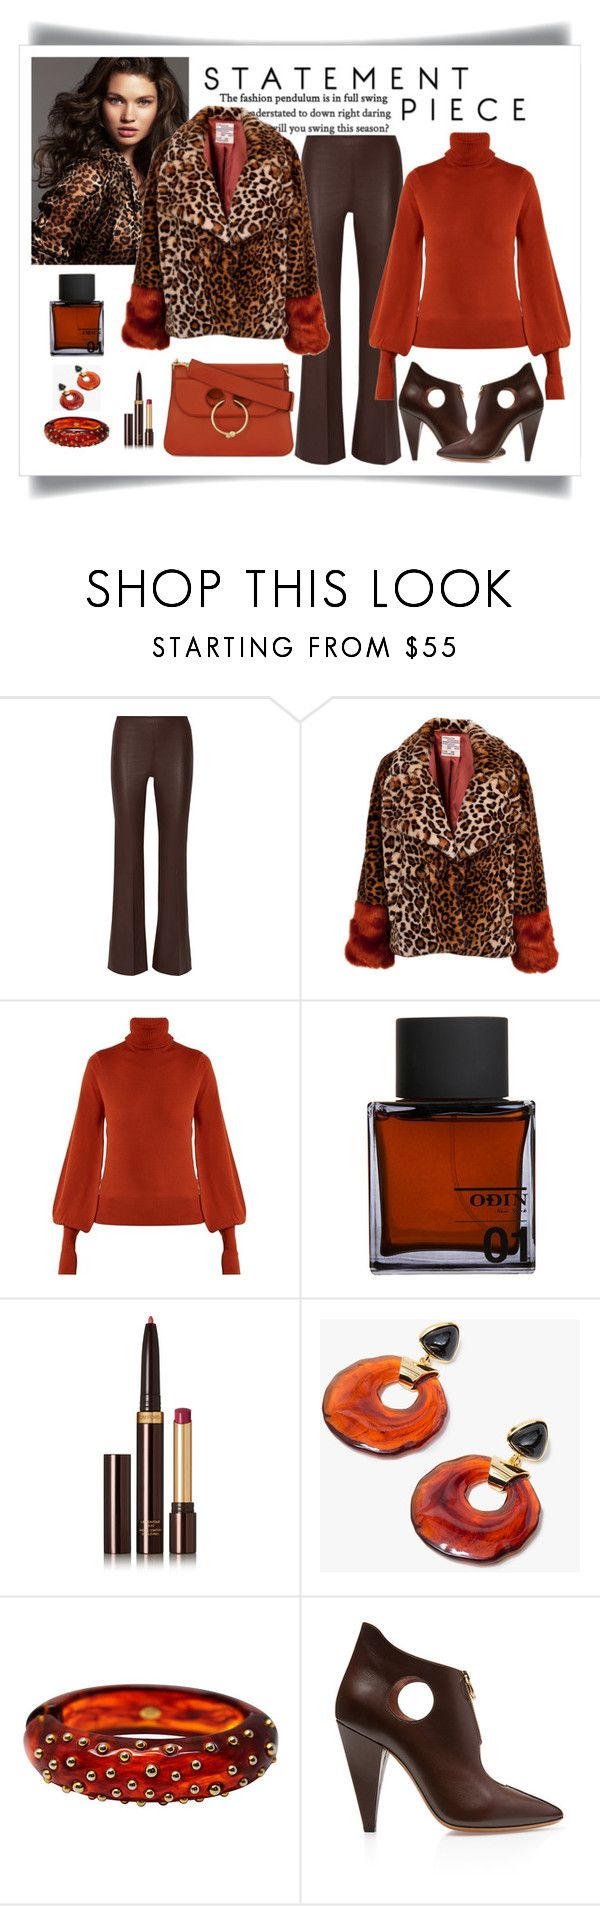 """Bellona Baum Und Pferdgarten Faux Leopard Coat"" by romaboots-1 ❤ liked on Polyvore featuring Tara Lynn, By Malene Birger, Chloé, Odin, Tom Ford, Lizzie Fortunato, Bally and J.W. Anderson"